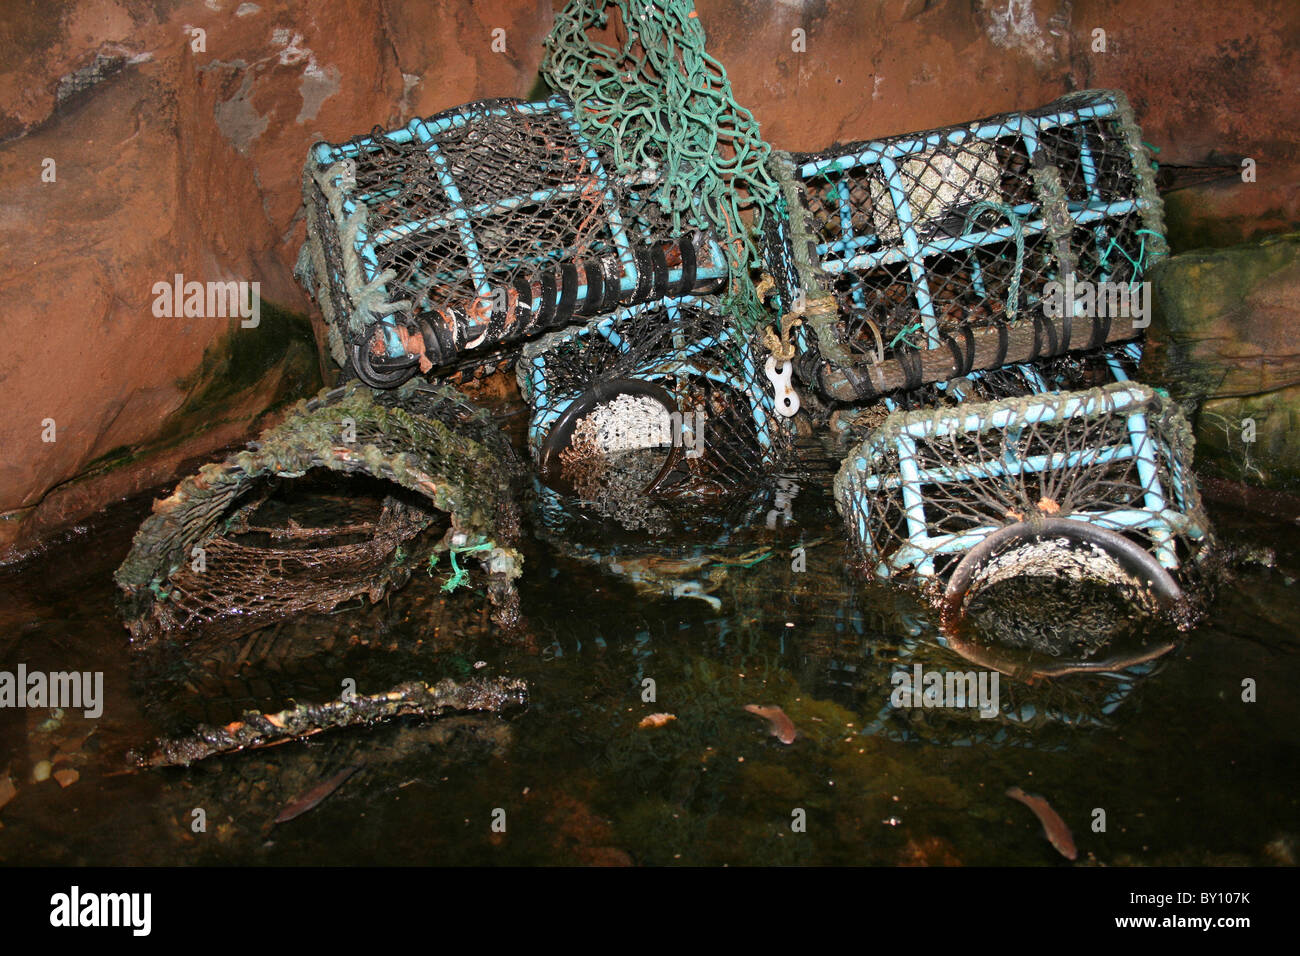 Collection Of Lobster Pots - Stock Image